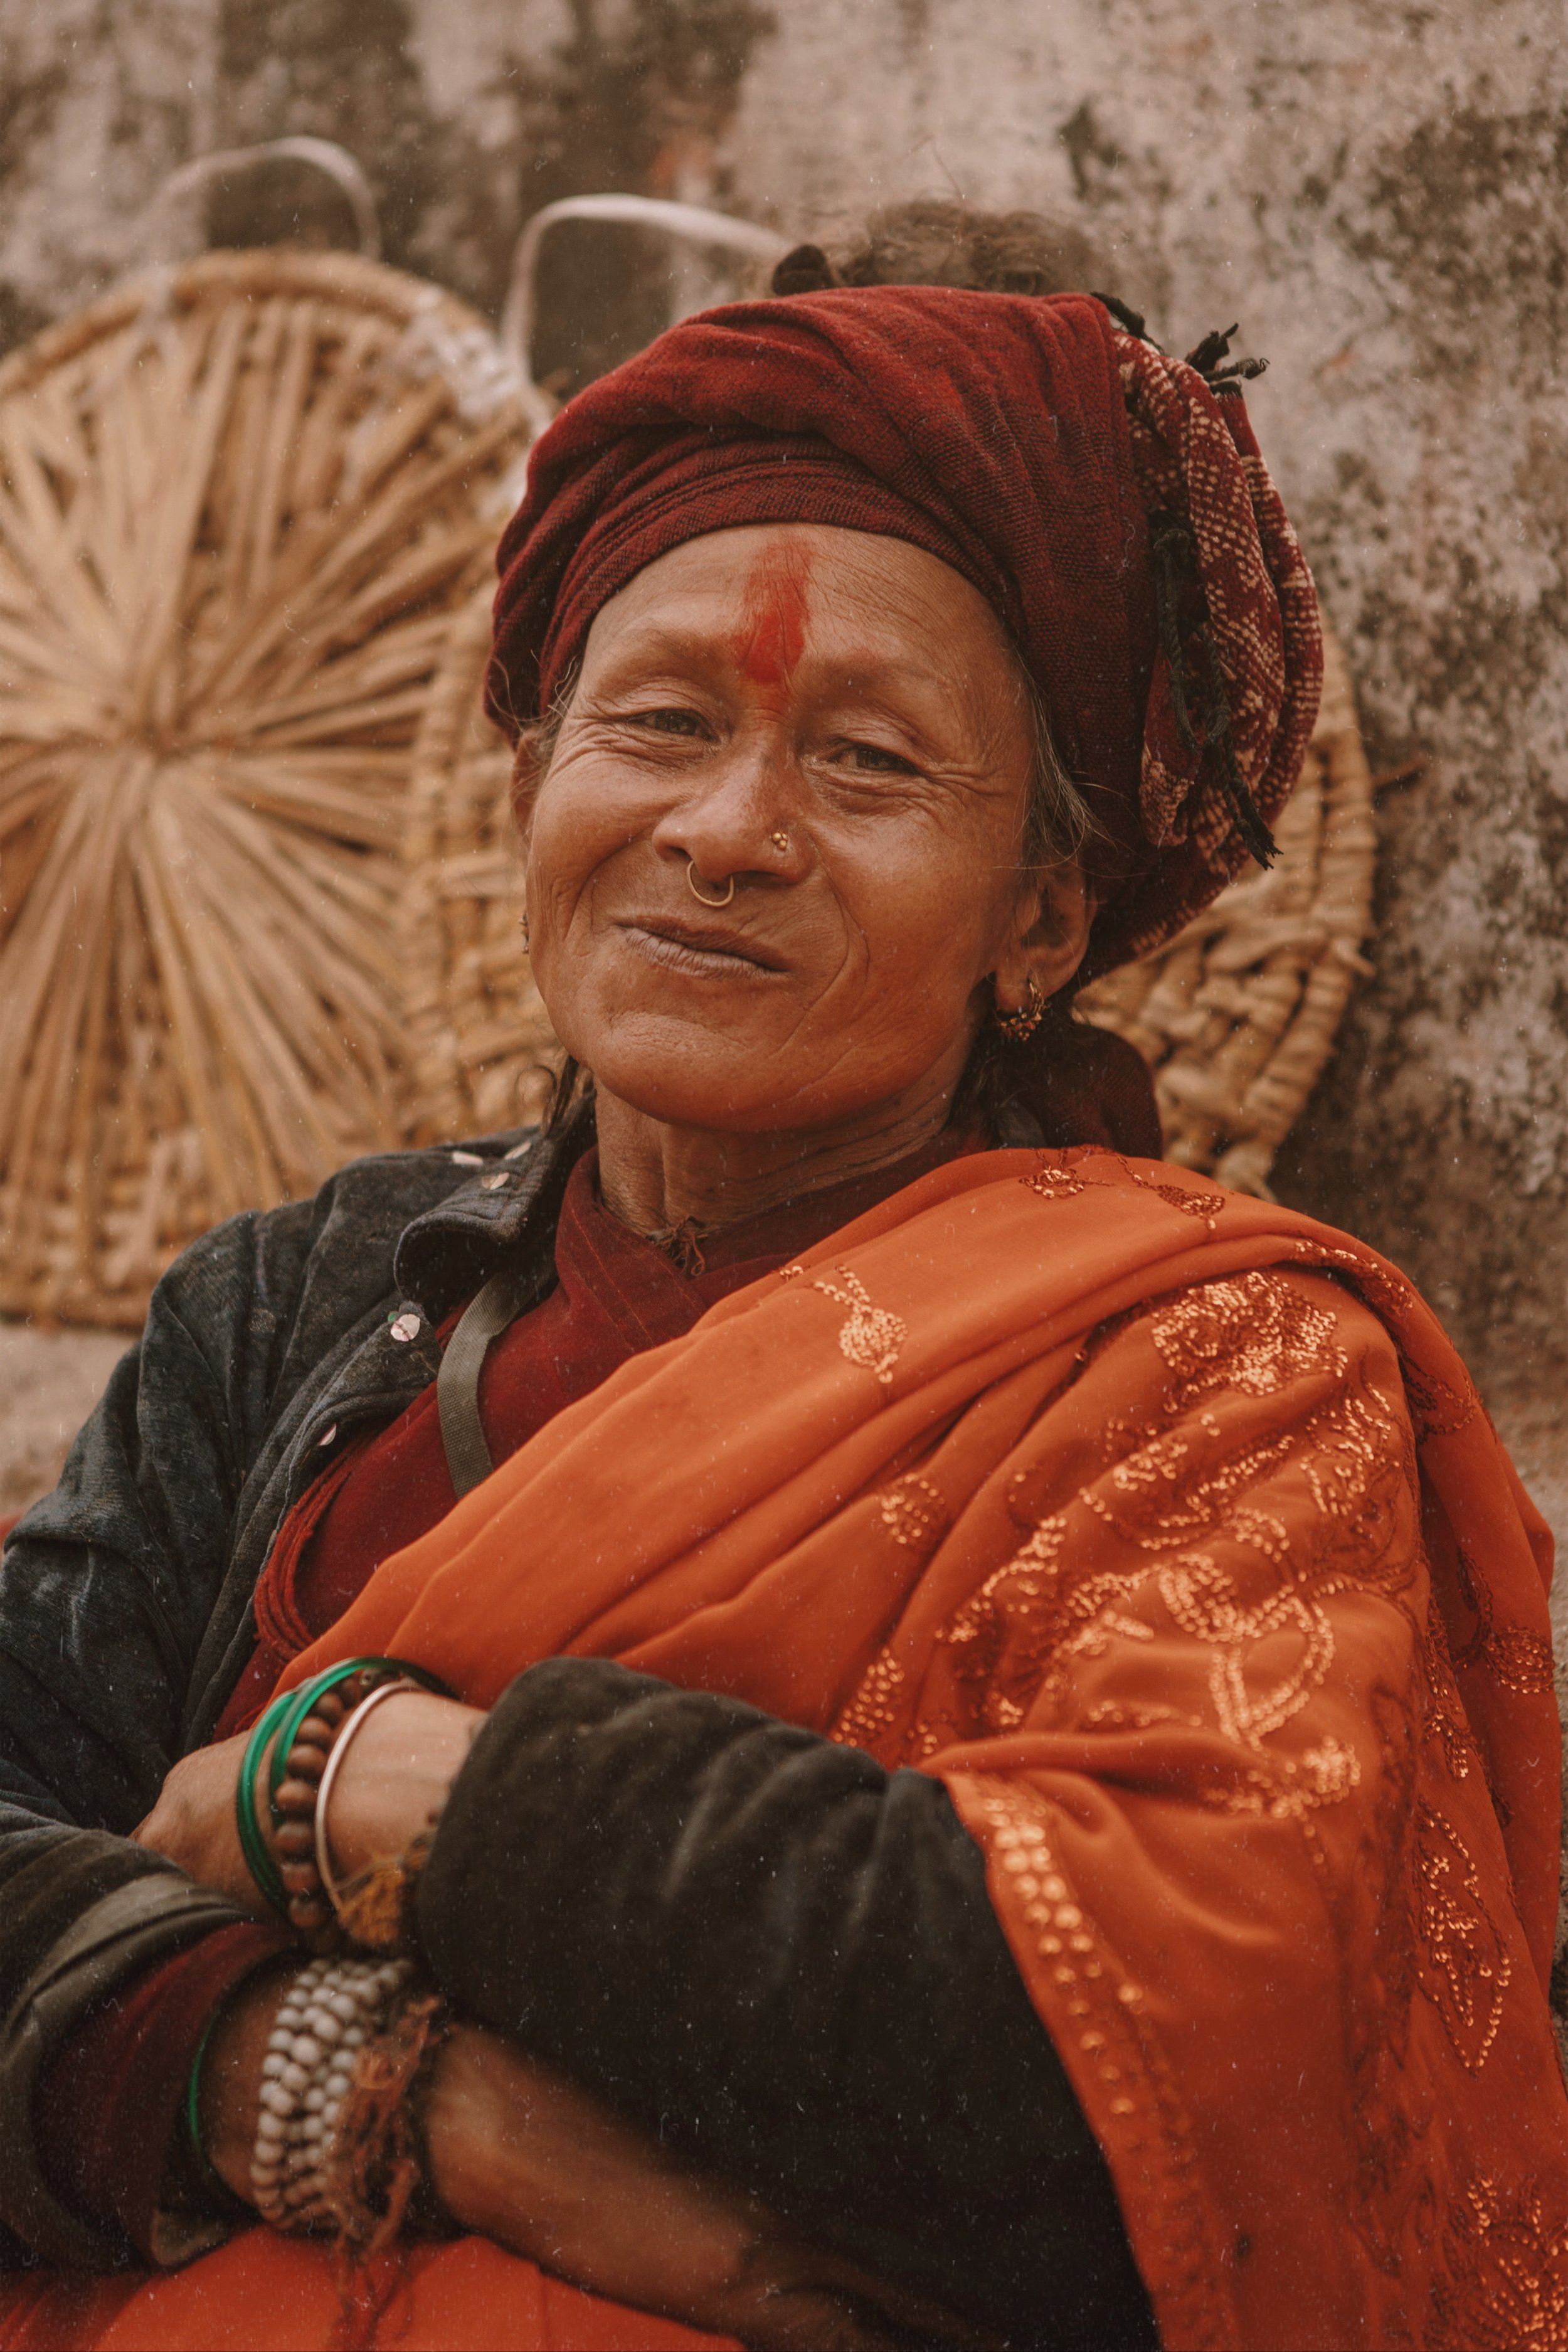 - A woman in Darjeeling, India selling baskets that she made by hand, takes a pause from her hustle to flash me a smirk.